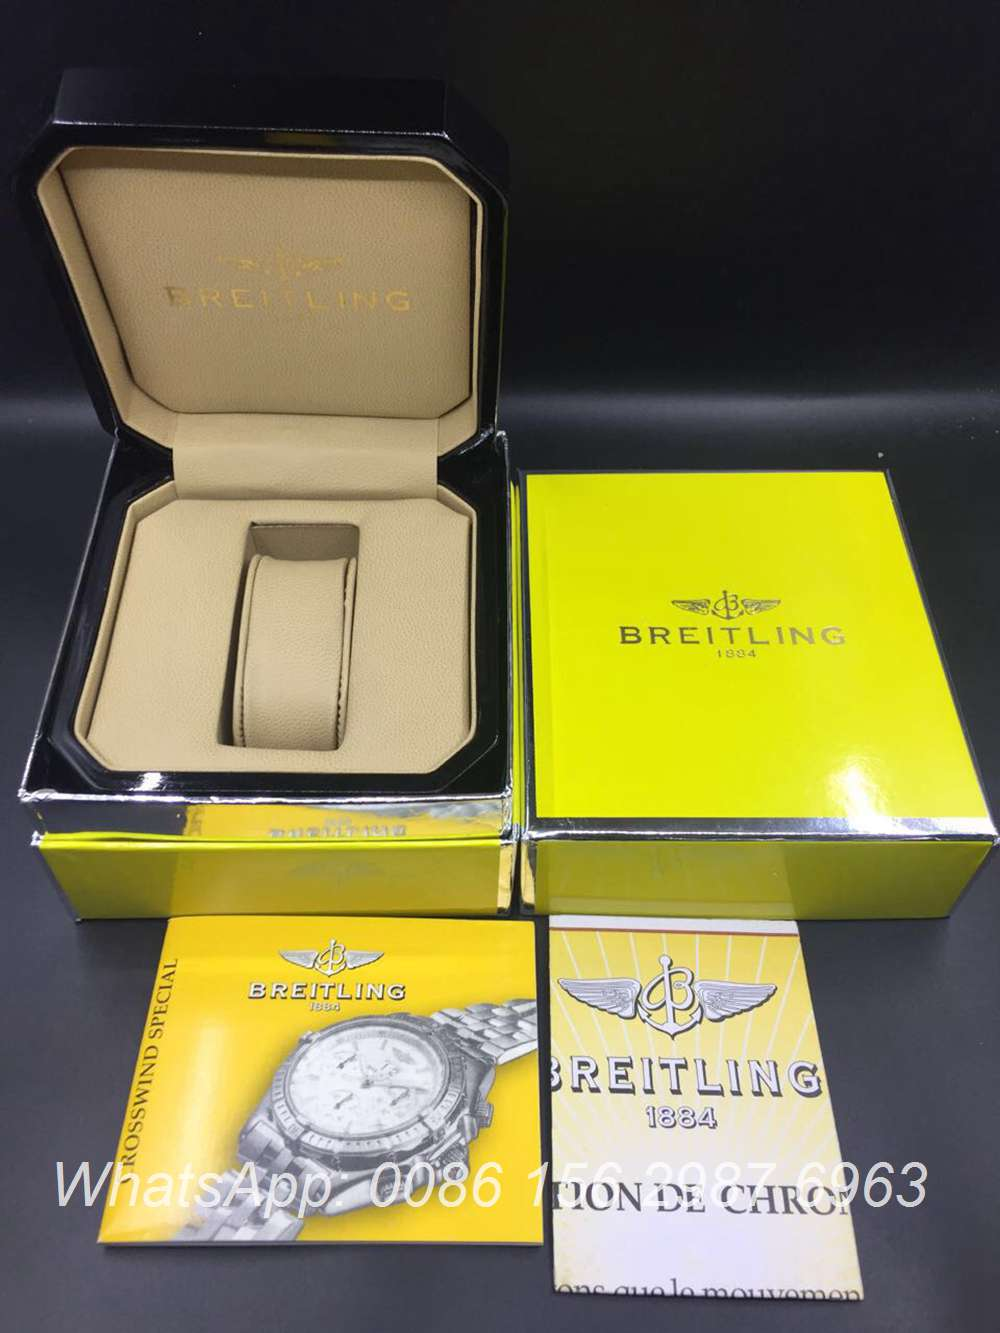 Breitling box #49 Wooden